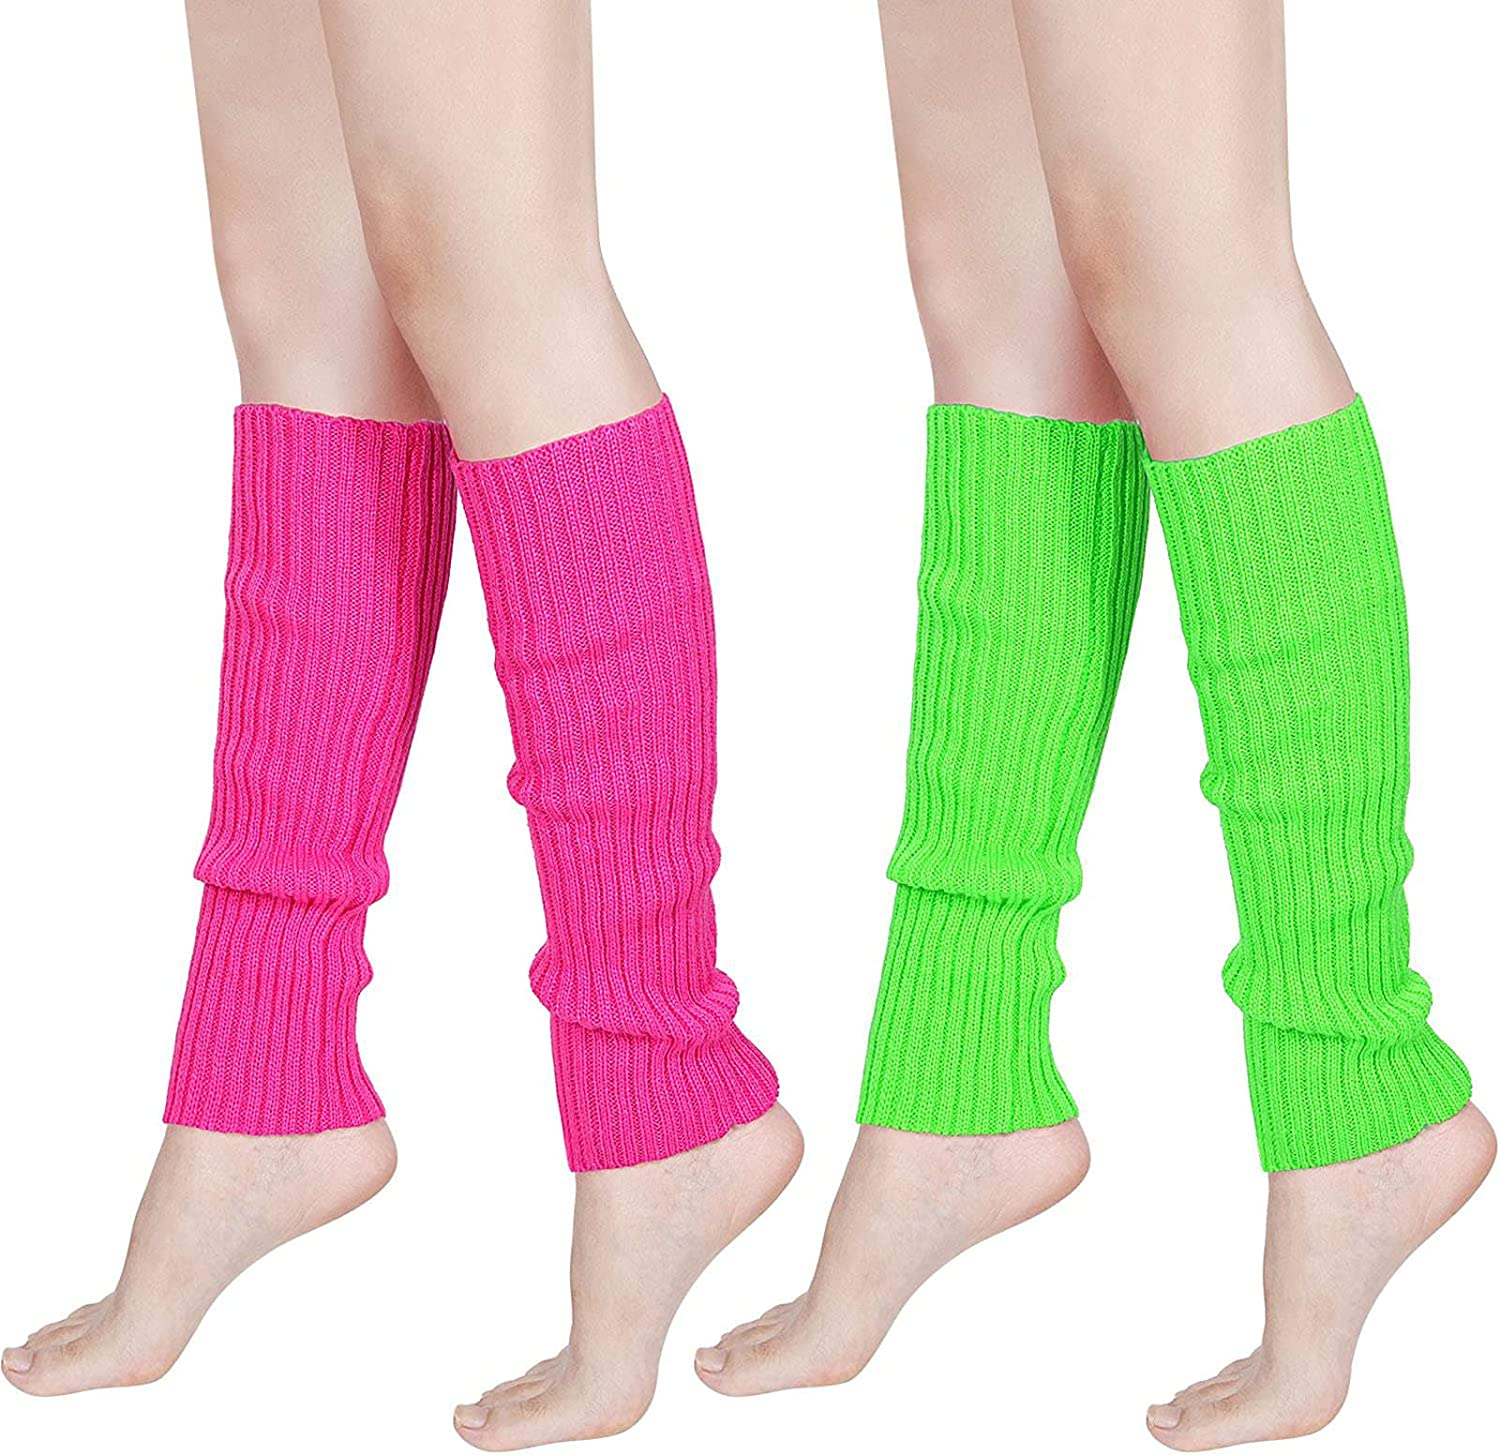 80s Women Neon Leg Warmers Knit Ribbed Leg Warmer for Party Accessories